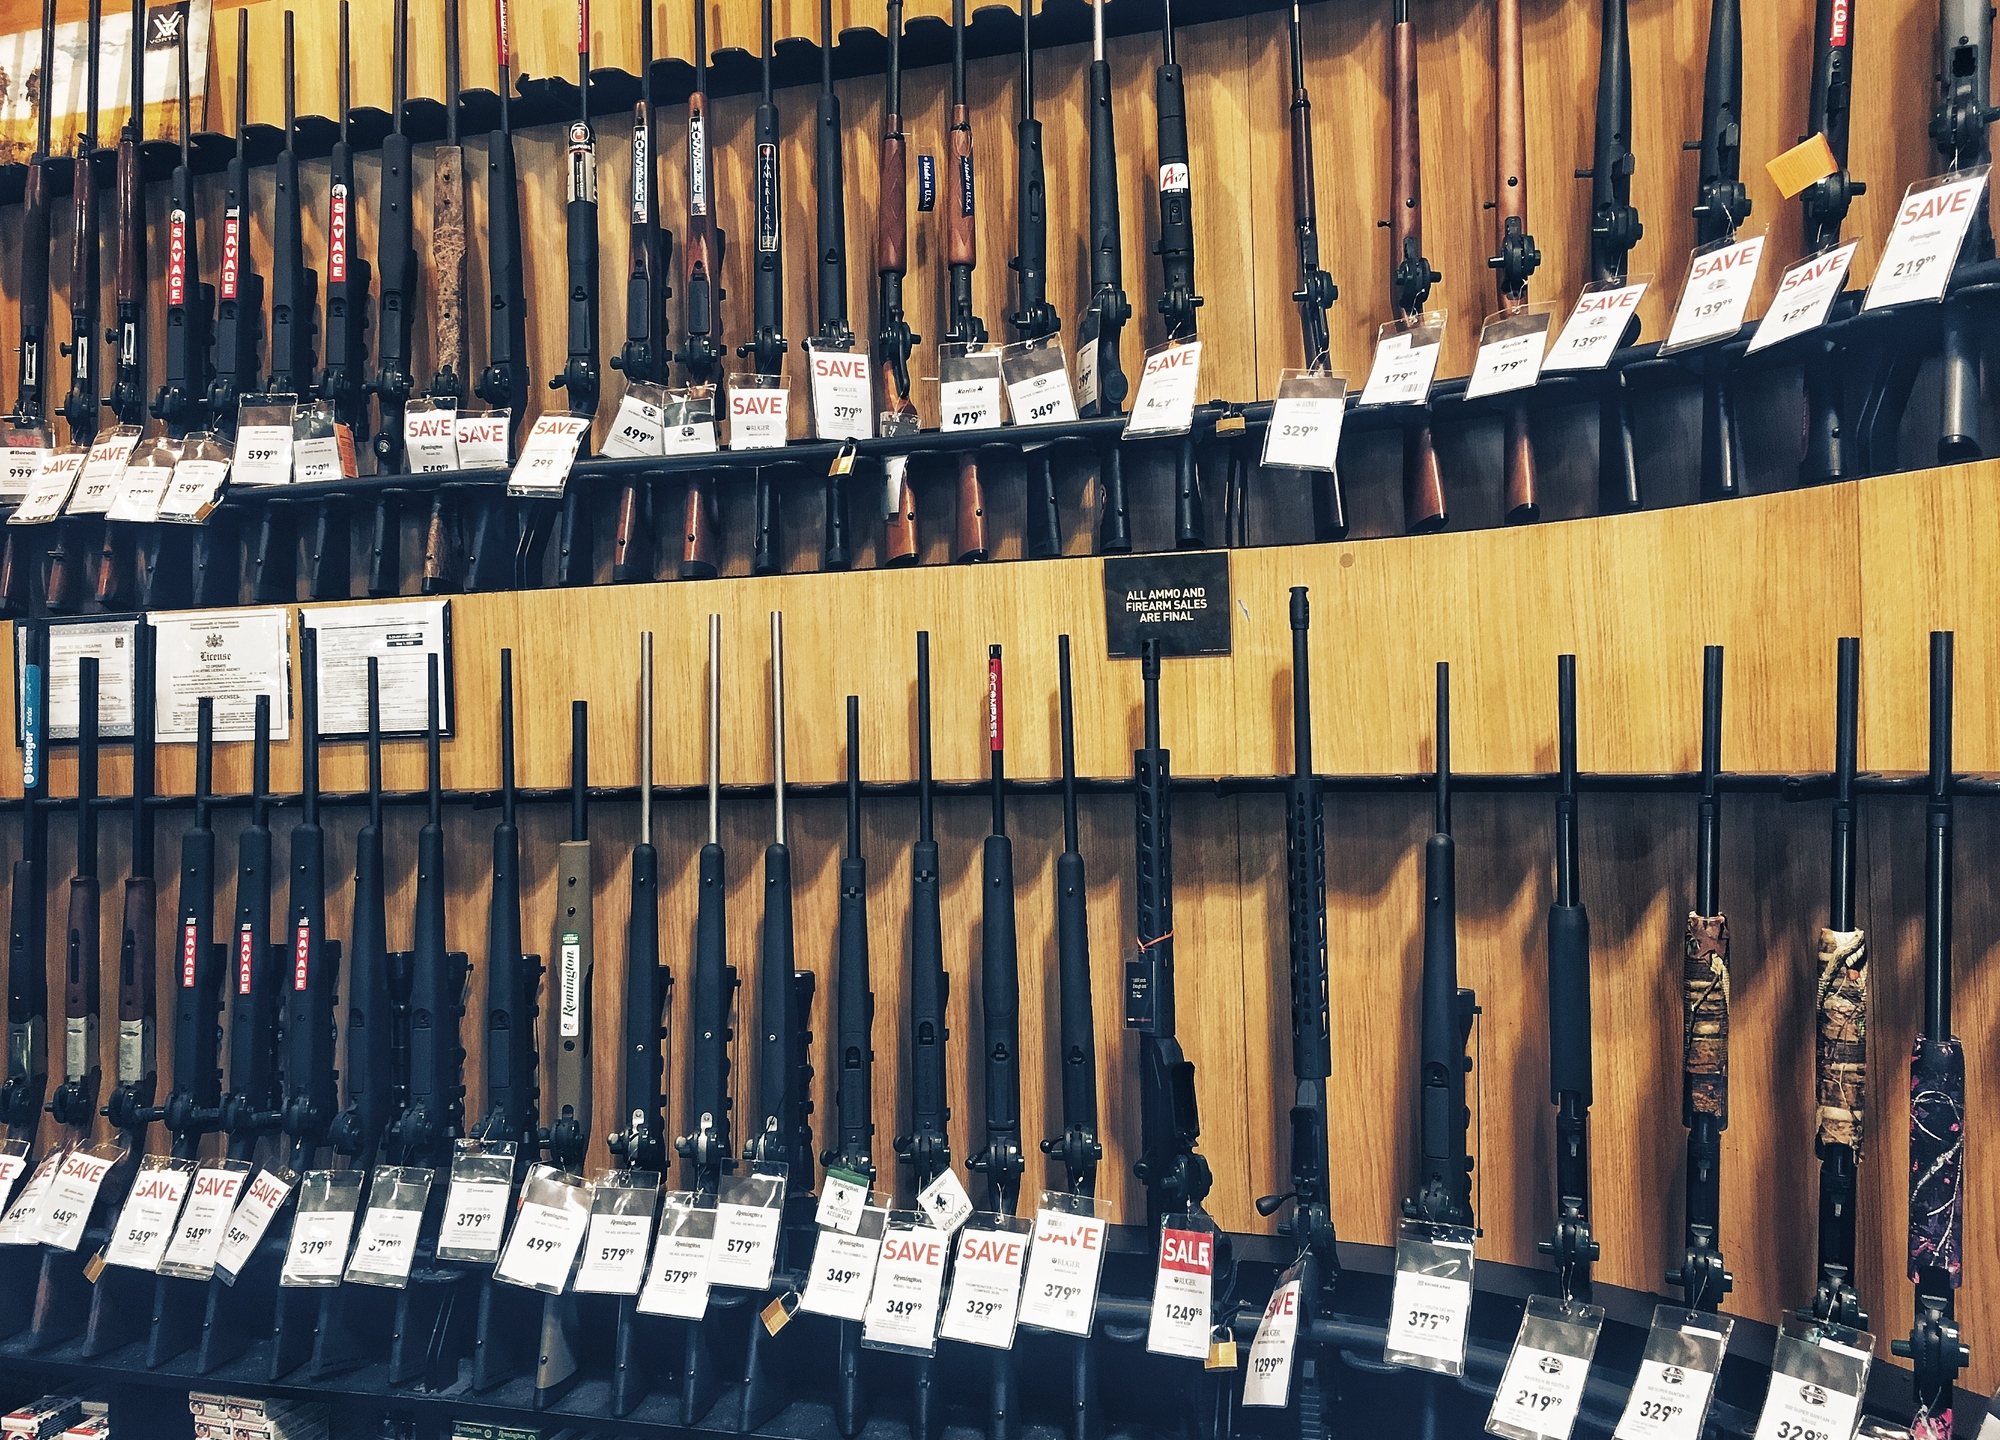 Stand with shotguns for sale in USA (Getty Images)